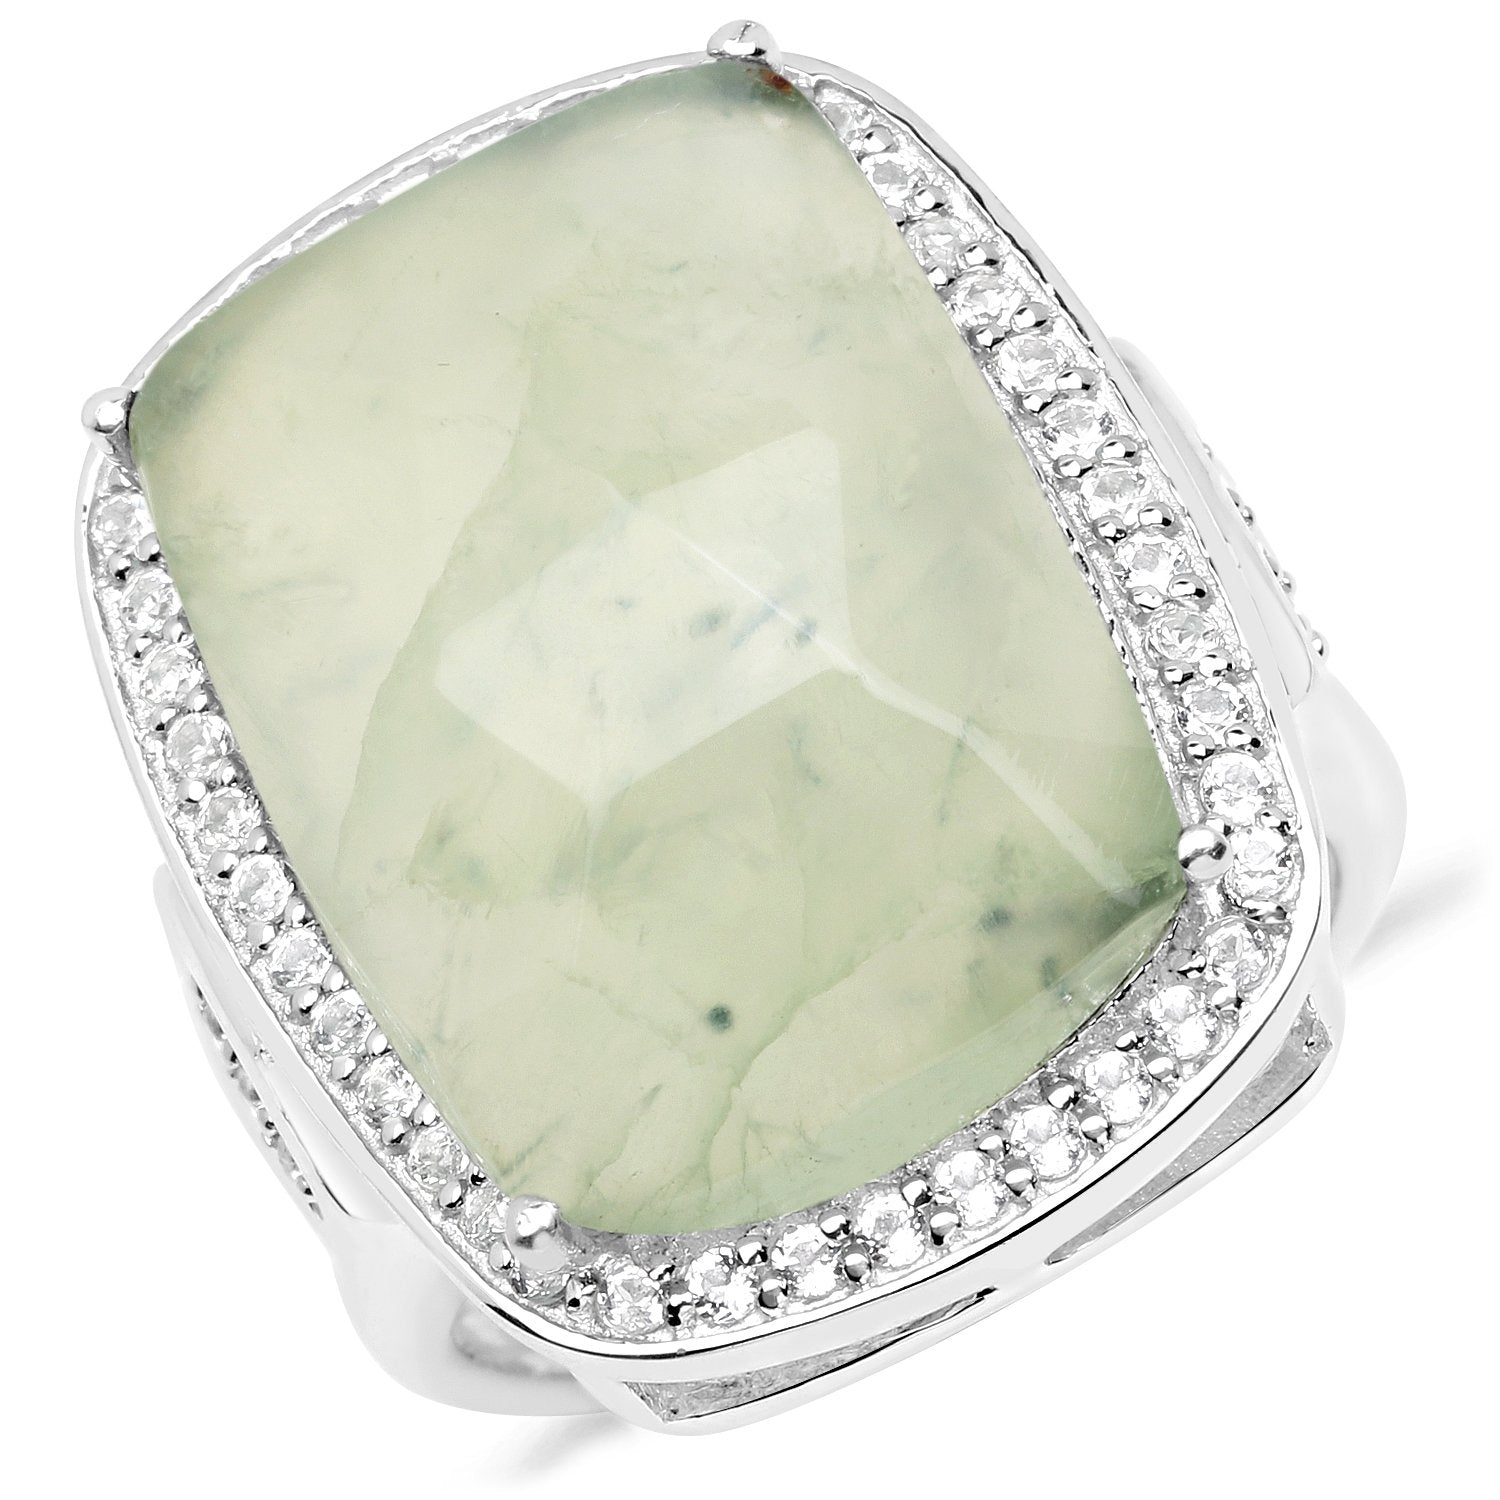 LoveHuang 13.88 Carats Genuine Prehnite and White Topaz Statement Ring Solid .925 Sterling Silver With Rhodium Plating